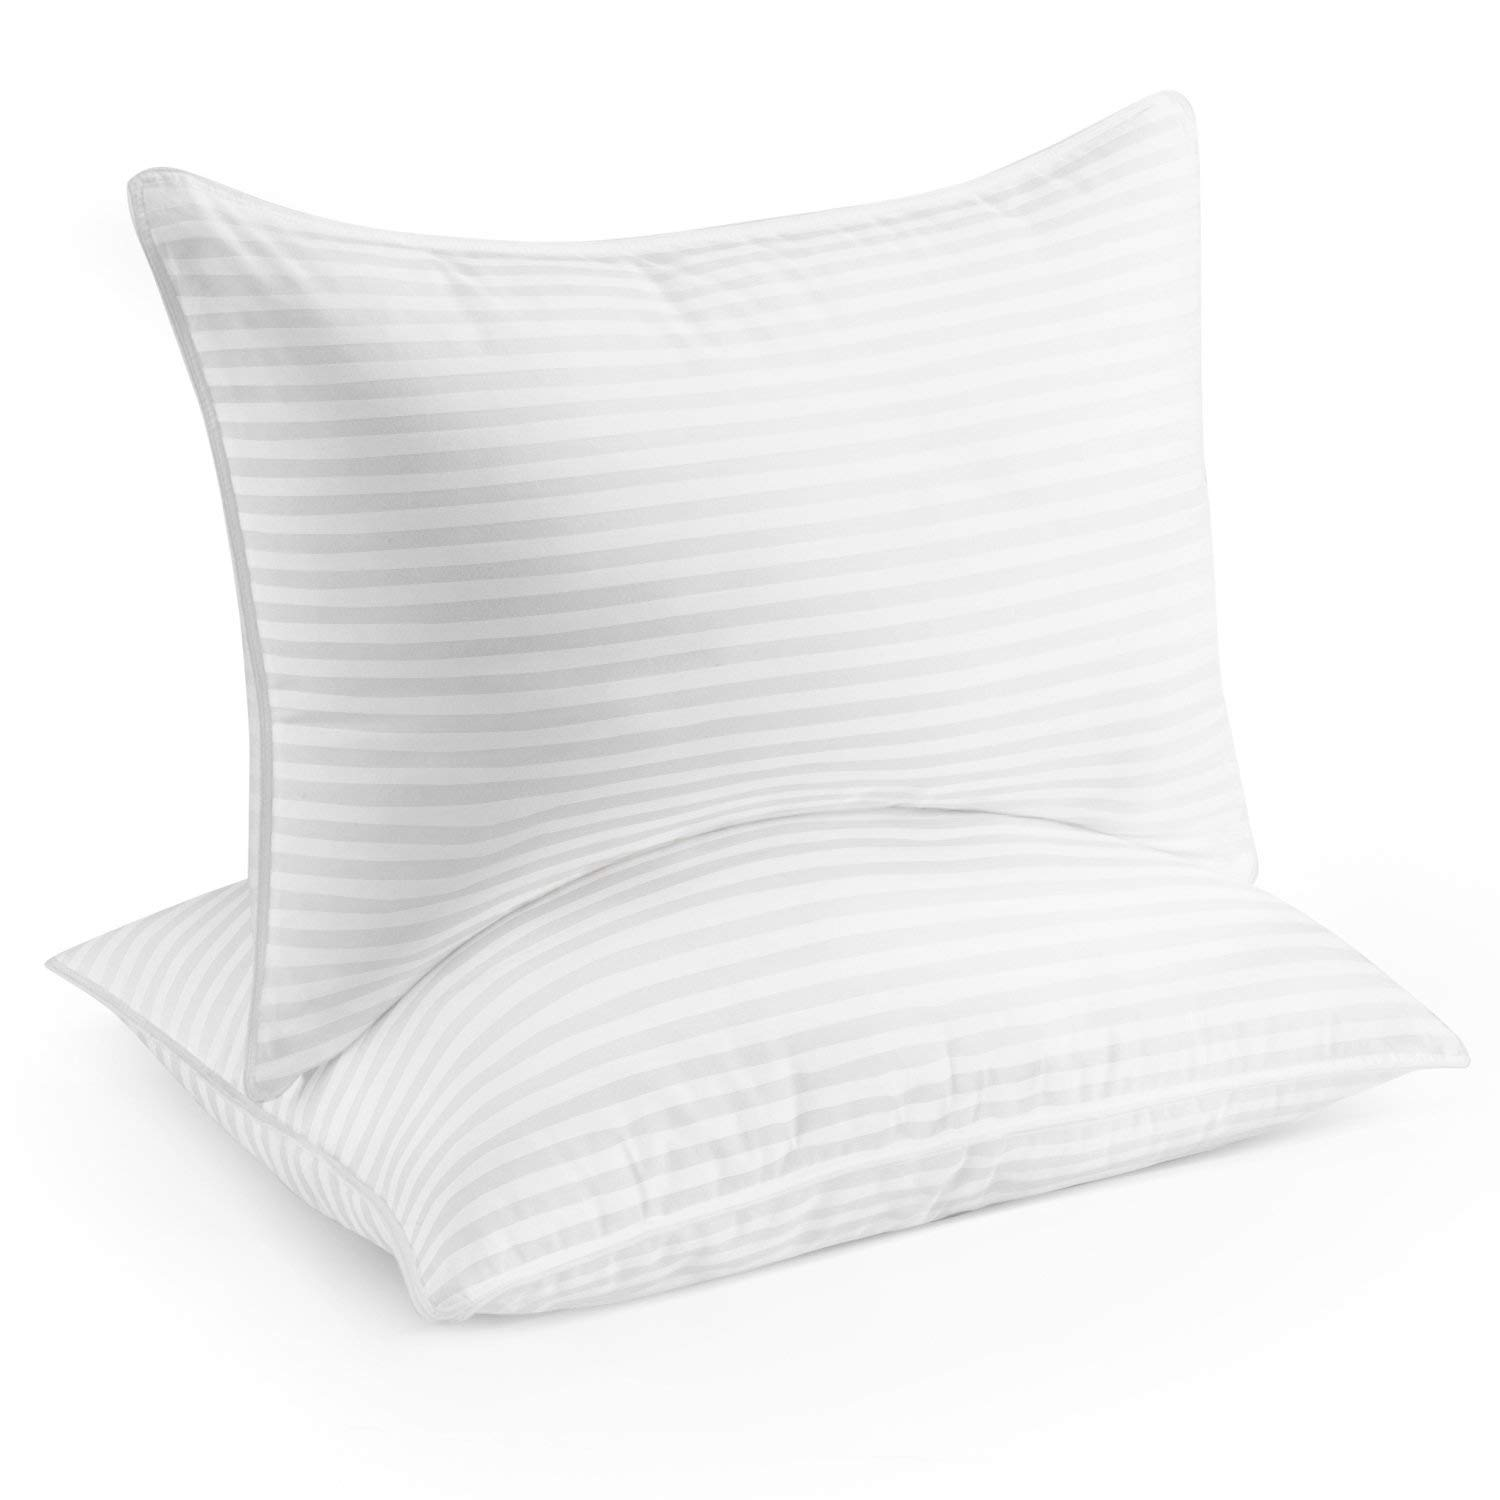 Beckham Hotel Collection Gel Pillow (2-Pack) - Luxury Plush Gel Pillow - Dust Mite Resistant & Hypoallergenic - Queen Best Hypoallergenic Pillows